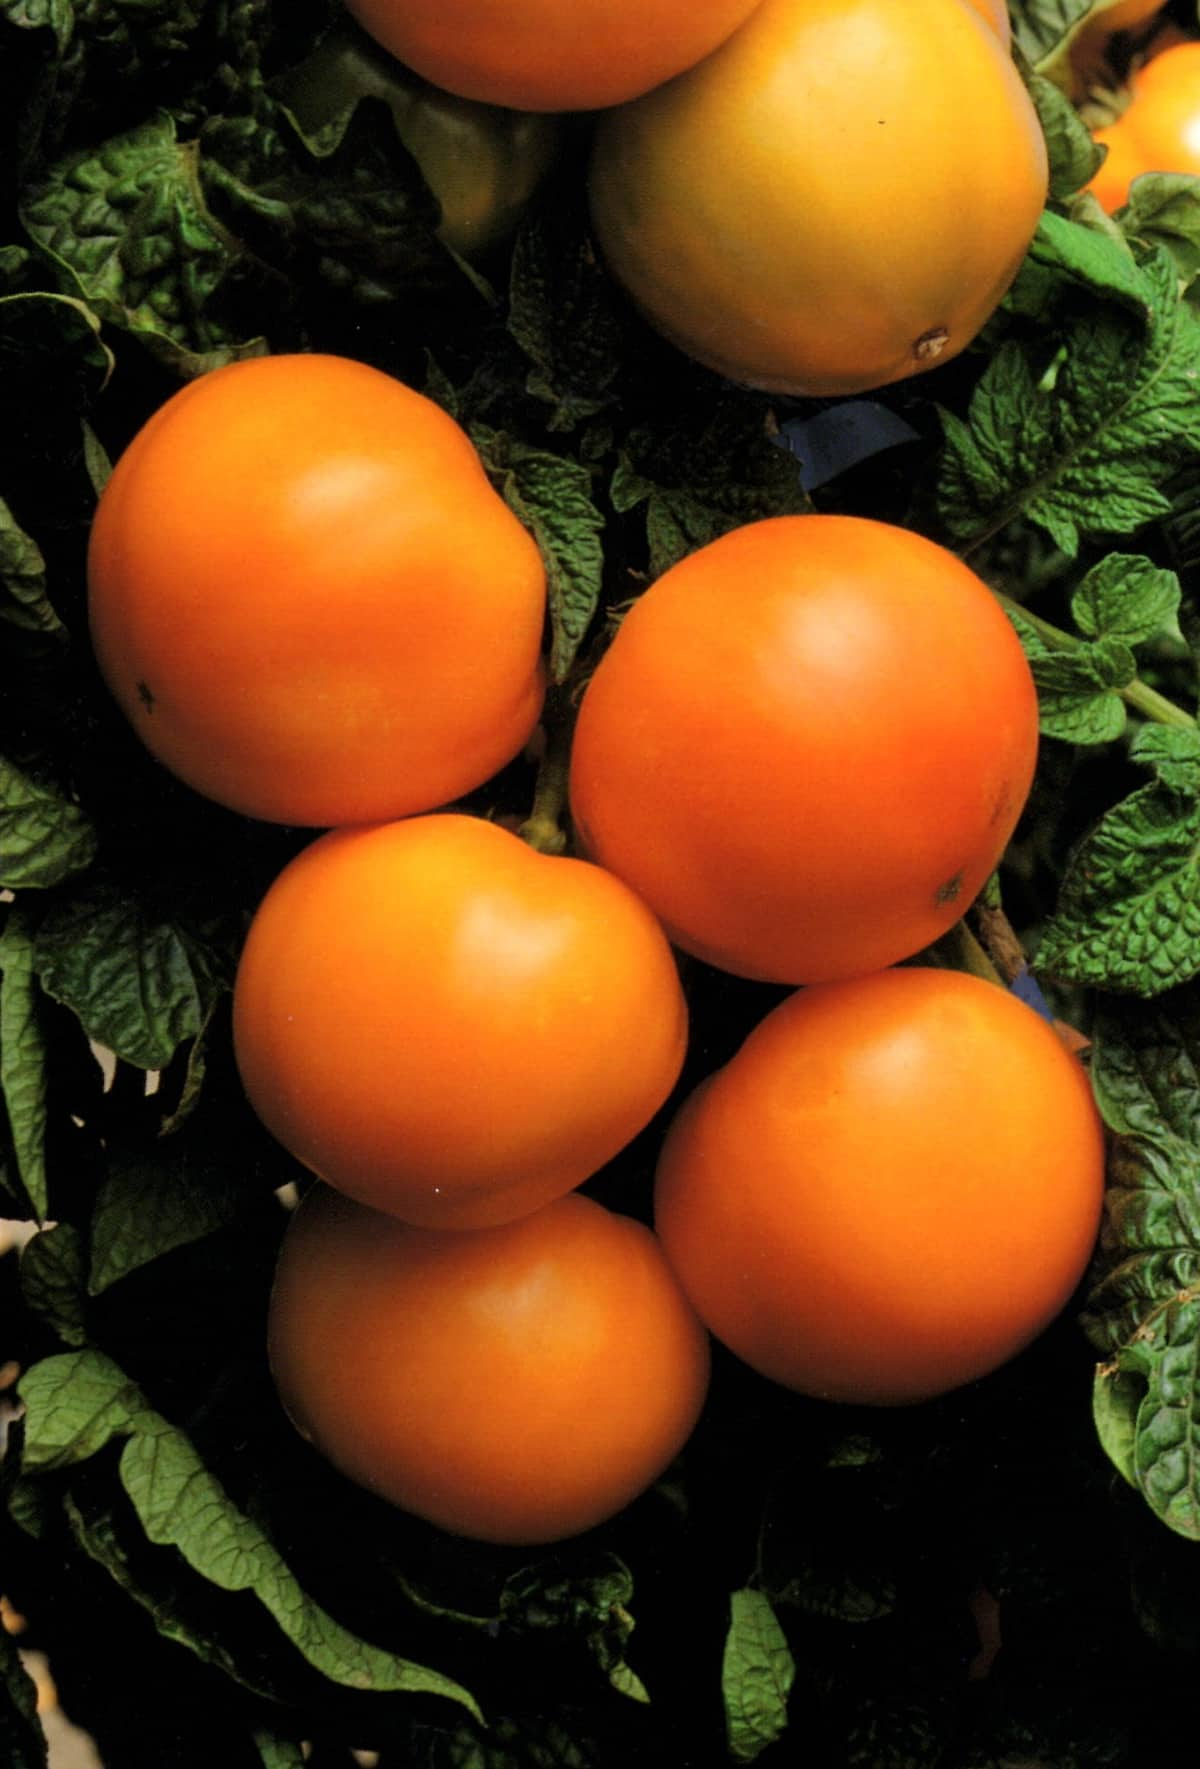 Tomato grove of groves: photos and reviews about the yield of the variety